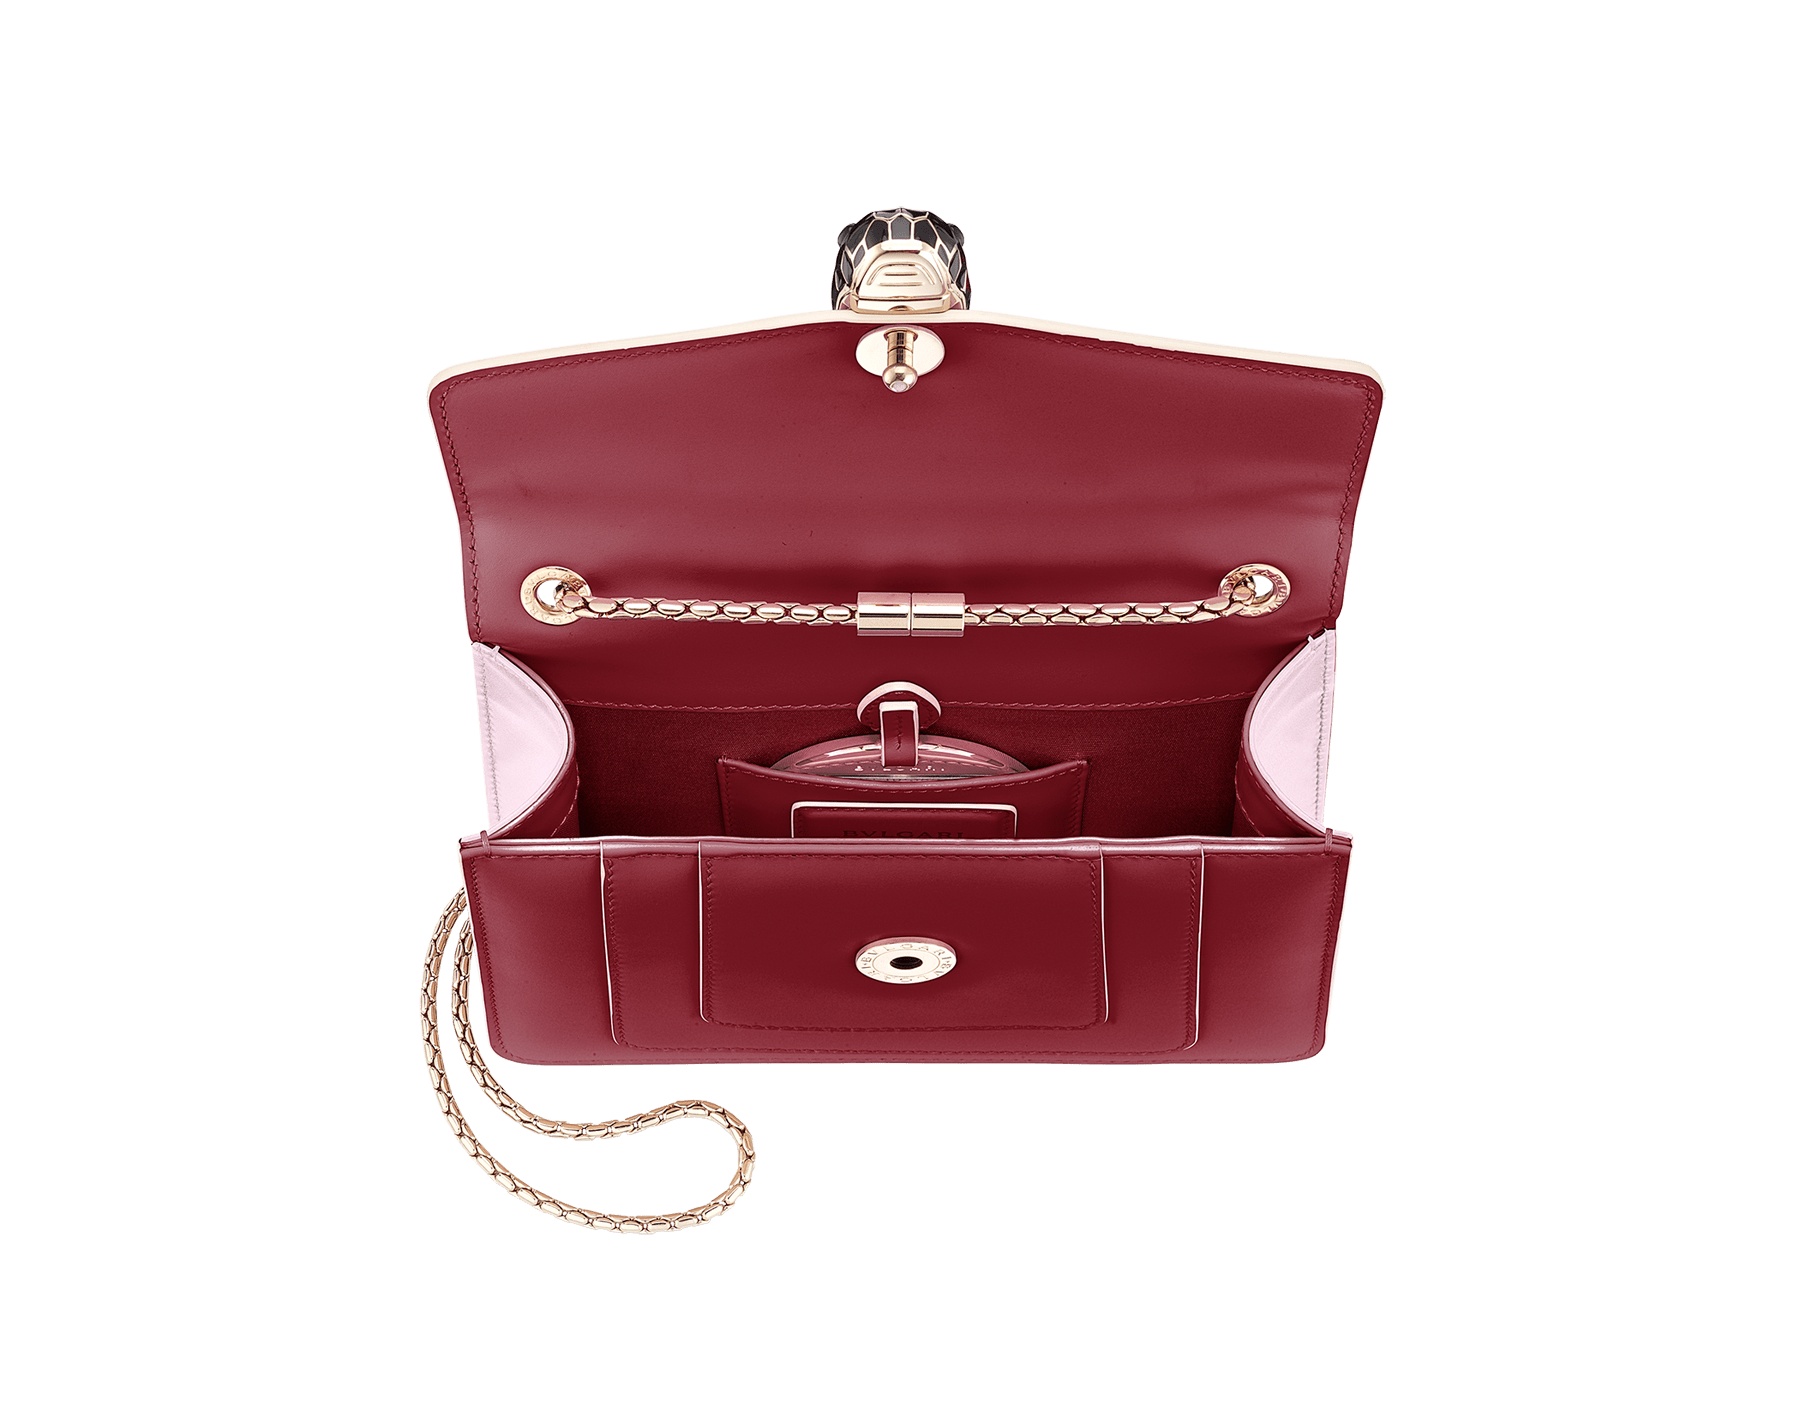 Serpenti Forever crossbody bag in Roman garnet calf leather, with rosa di francia calf leather sides. Iconic snakehead closure in light gold plated brass embellished with black and white enamel and green malachite eyes. 289035 image 7